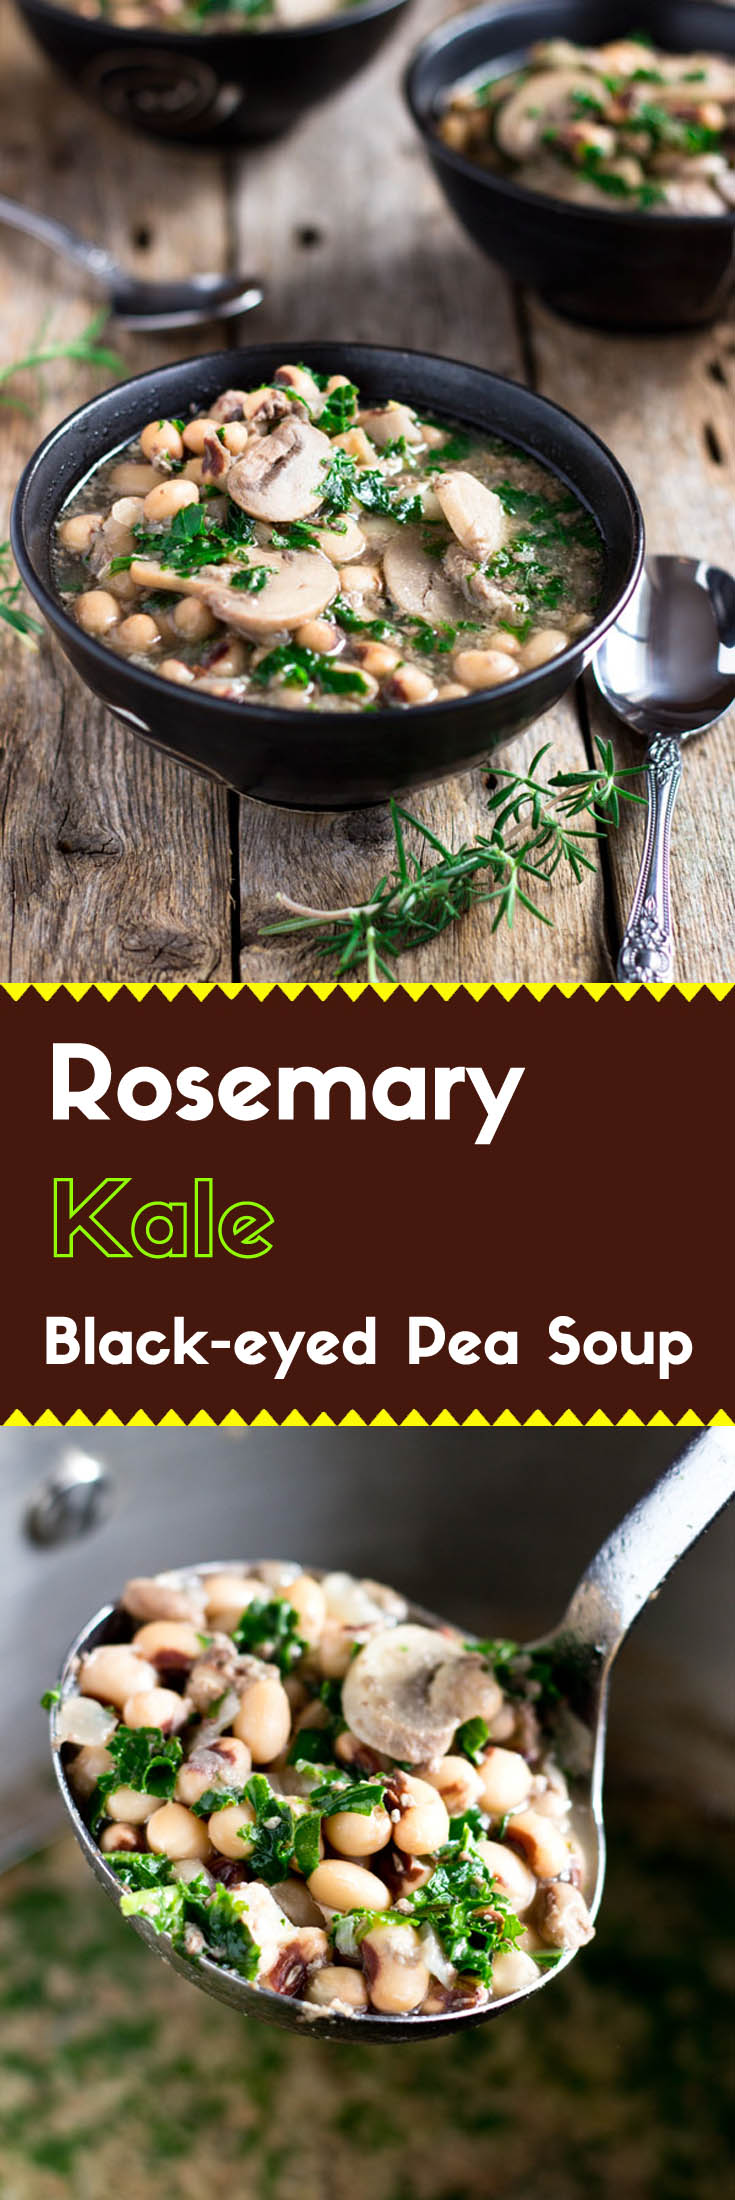 Making this rosemary black-eyed pea soup is effortless. It fills the room with a pleasant aroma from the coconut milk and the fresh rosemary. (#soup #stew #blackeyedpeasoup #vegan #dinner #healthymeals #glutenfreemeal #glutenfree #glutenfreevegan #pressurecookerrecipes)